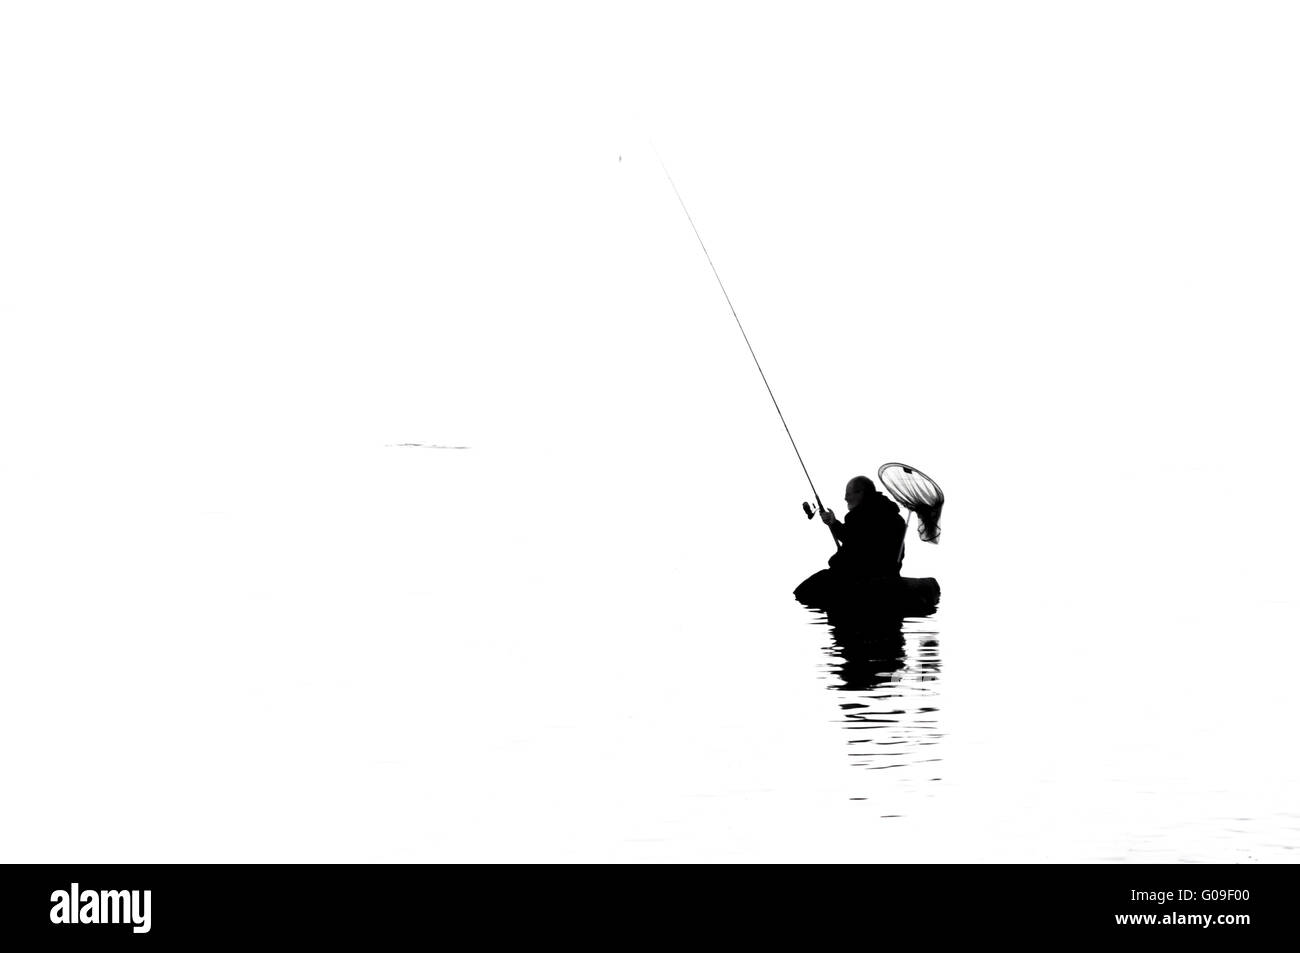 Man with Fishing - Stock Image